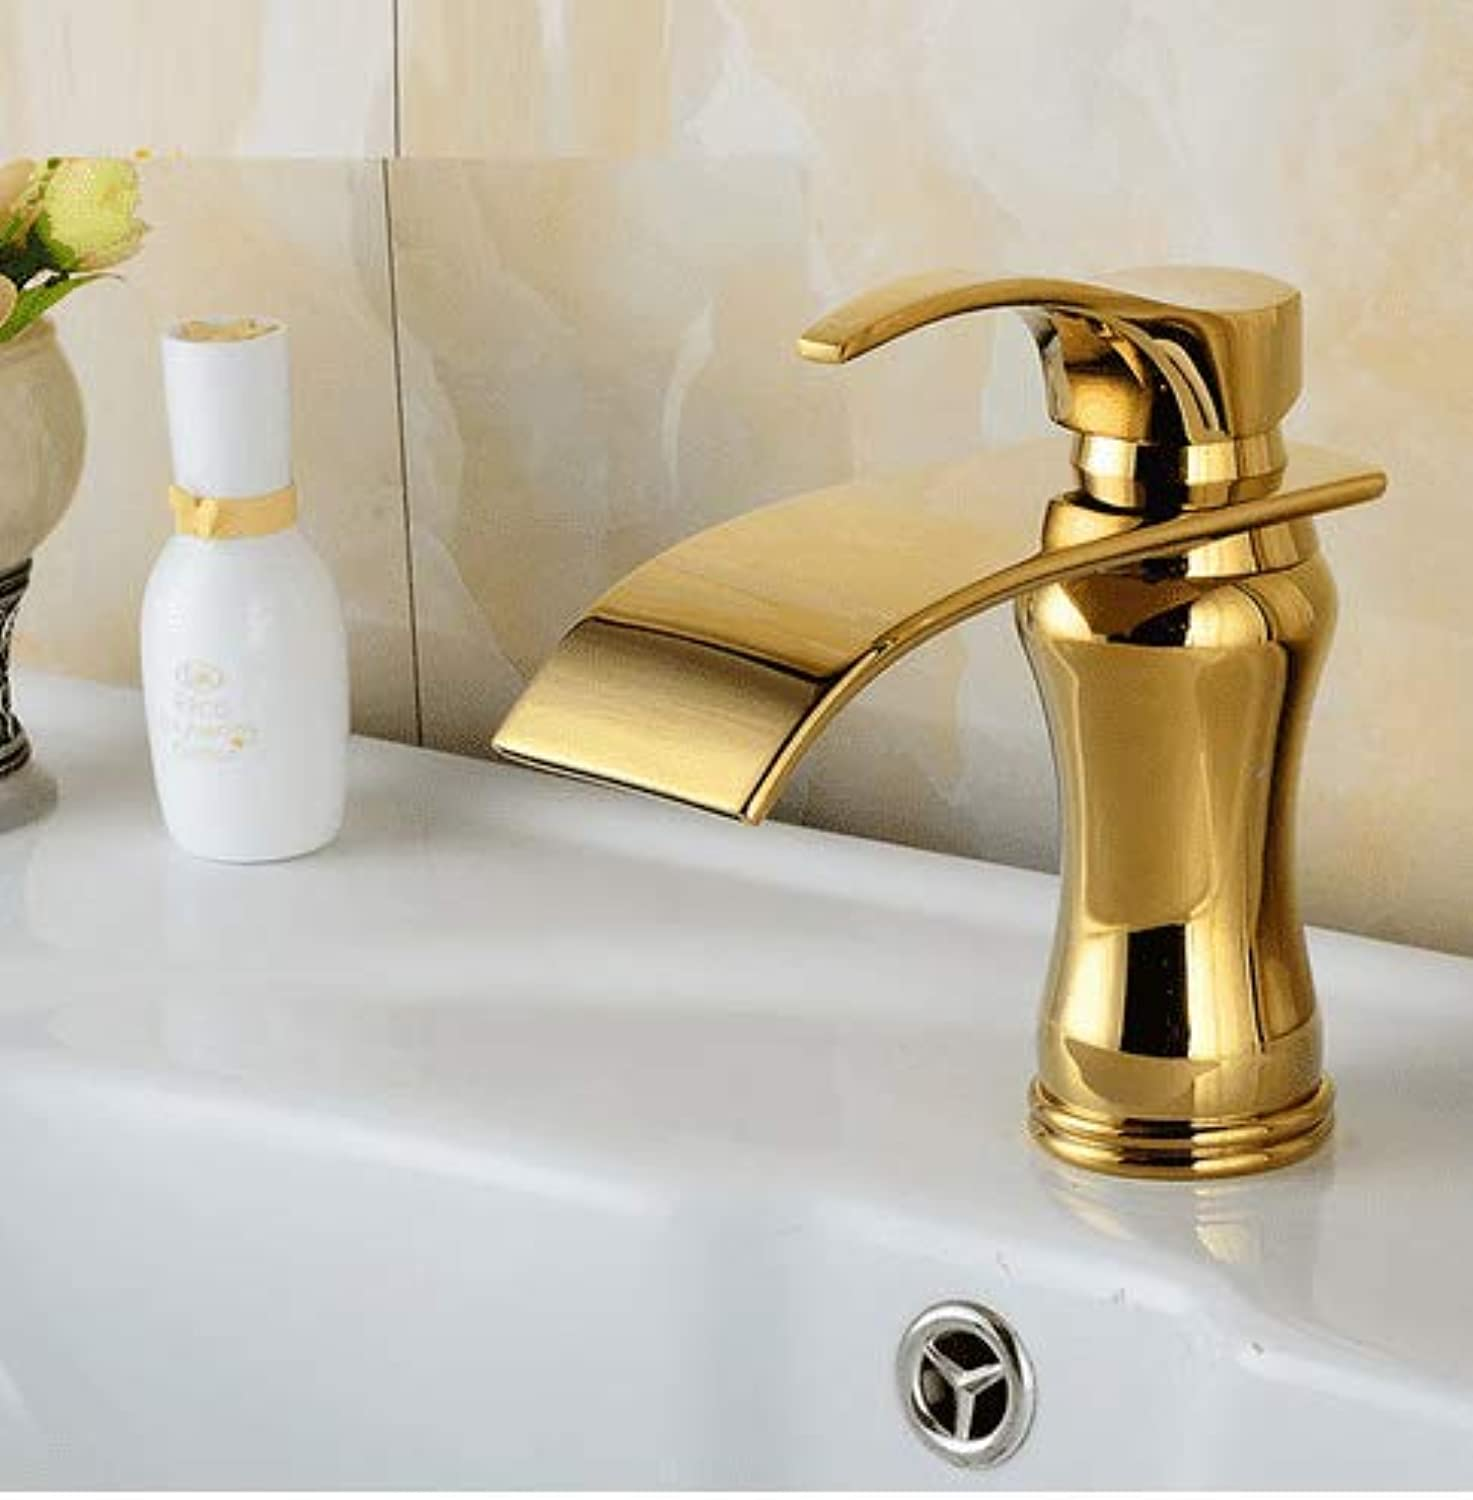 Bathroom Sink Faucet Basin Mixer Tap Classic Single Hole Kitchen Sink Faucet Antique Brass Hot &Cold Basin Mixer Tap